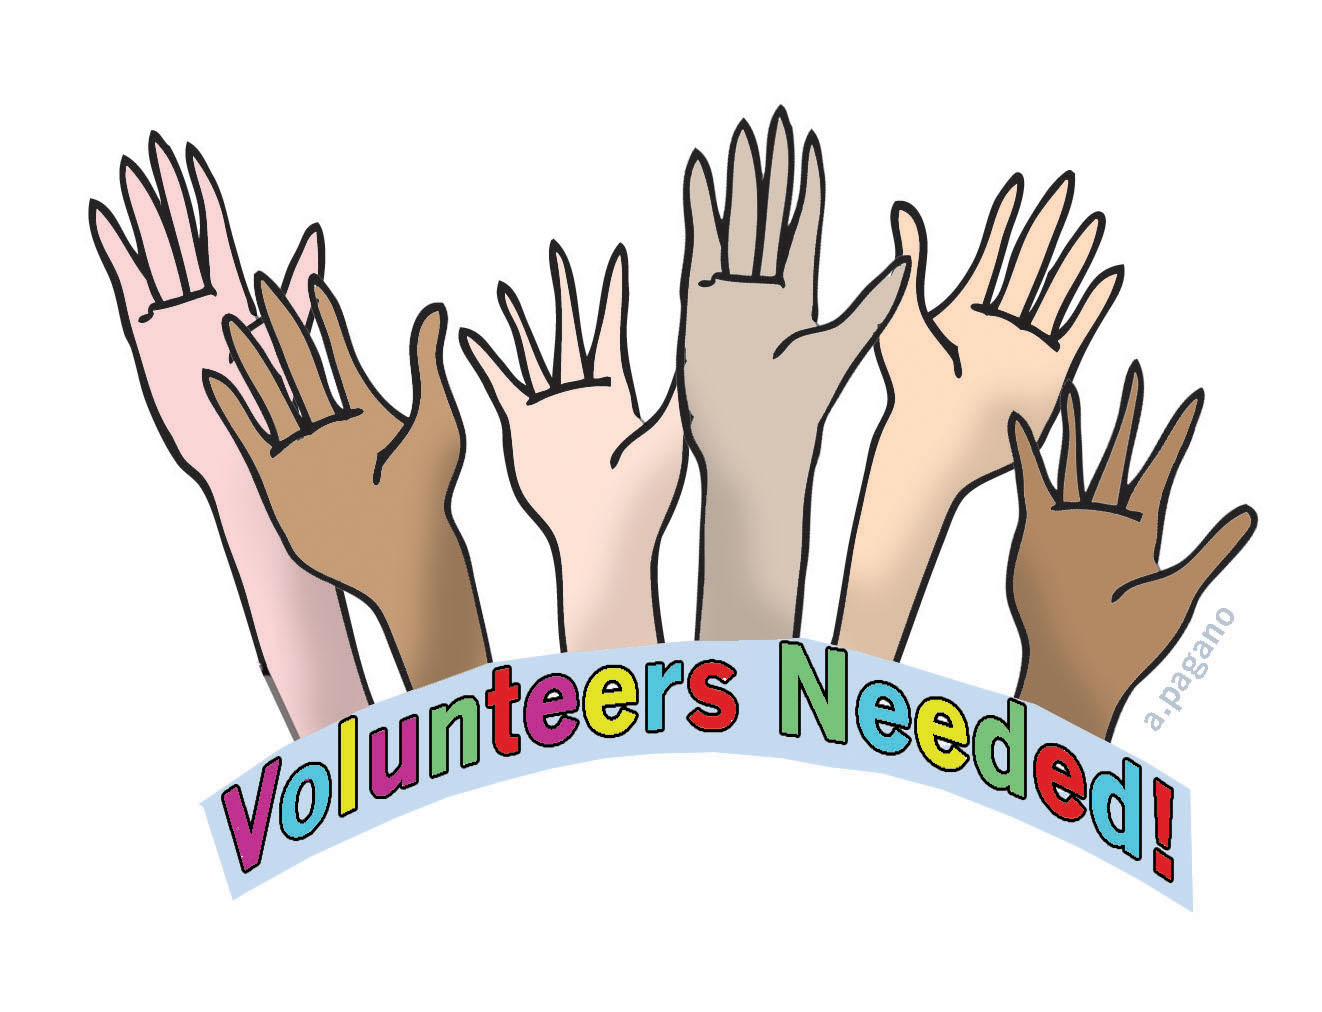 Free clipart volunteers needed 2 » Clipart Station.